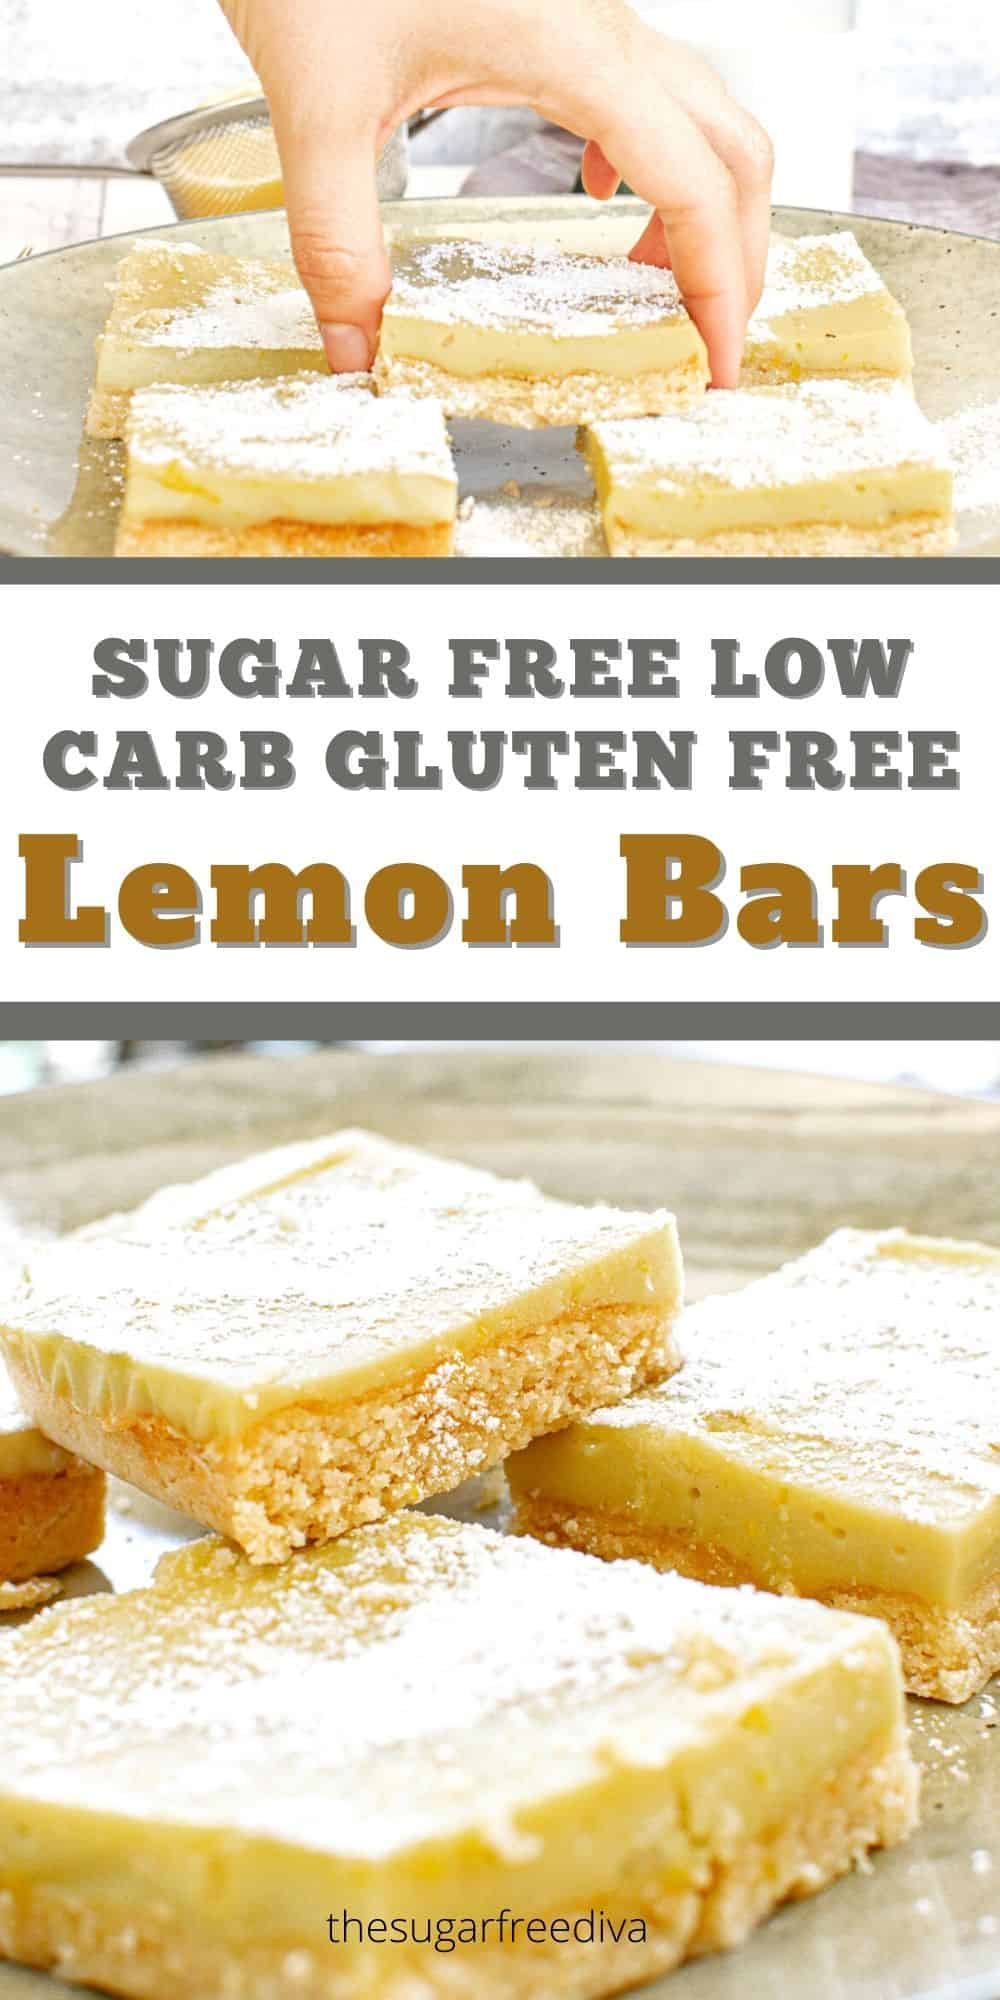 Sugar Free Low Carb Lemon Bars